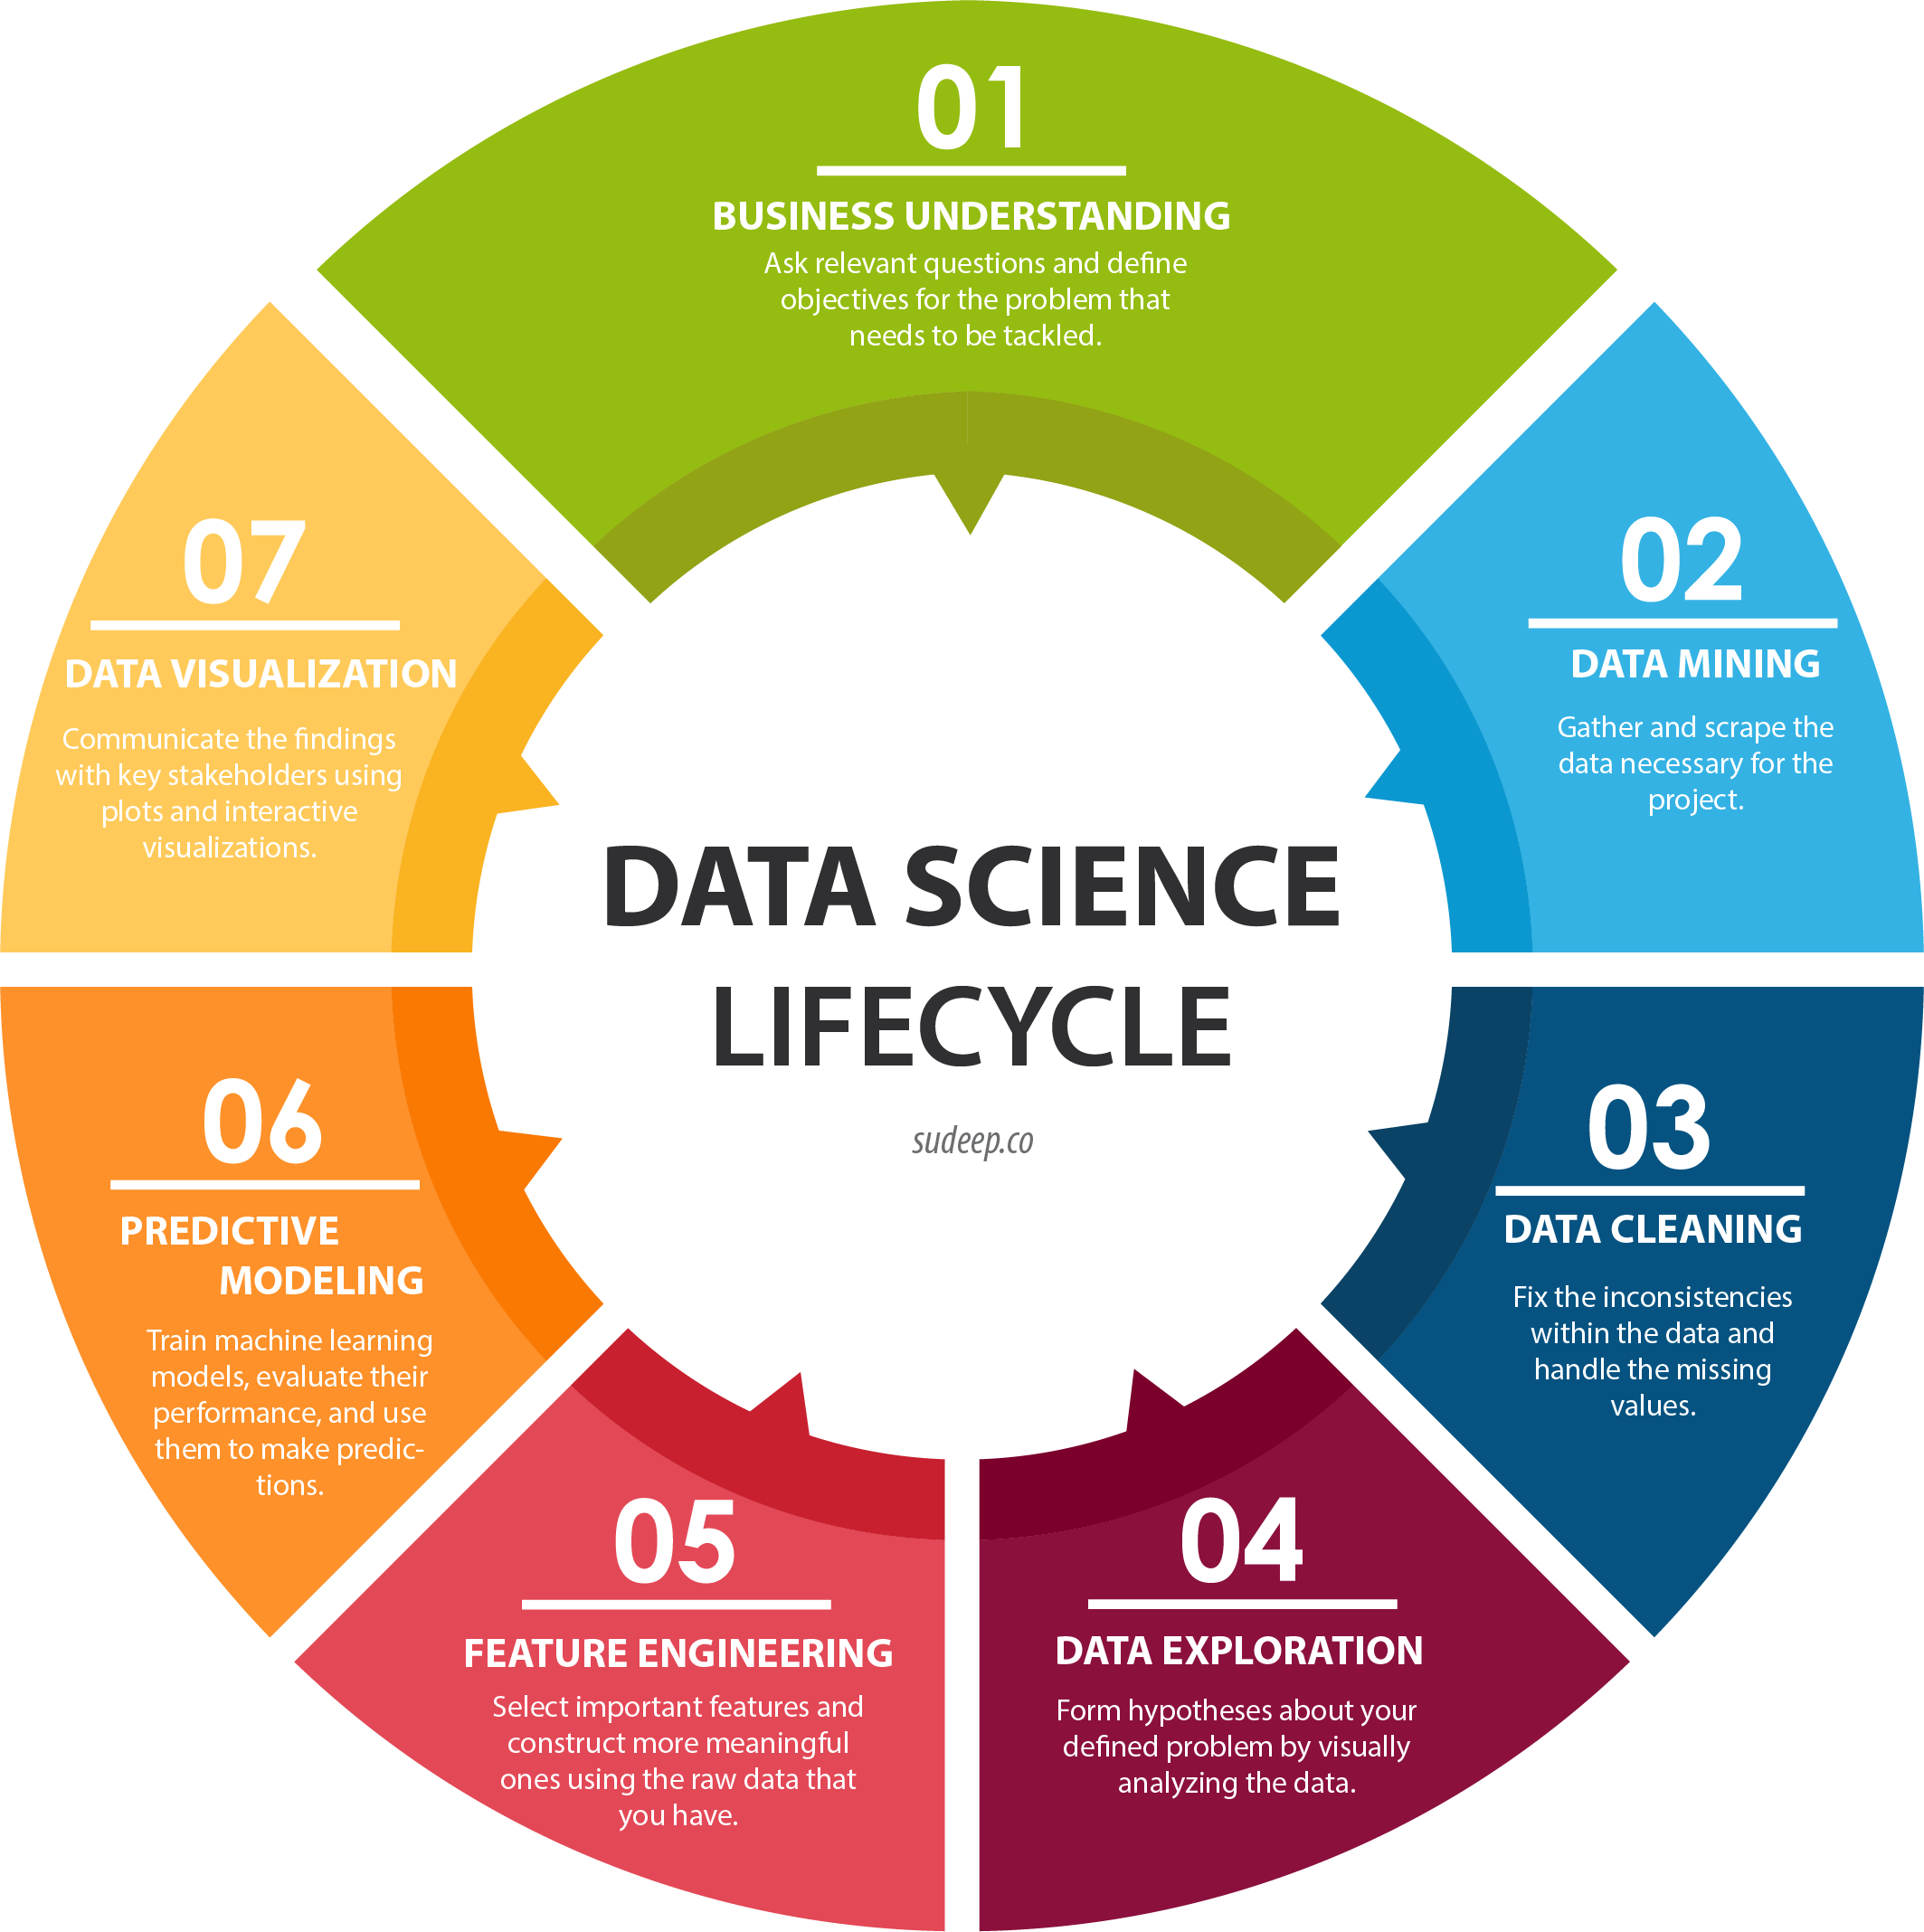 Understanding The Data Science Lifecycle · Sudeep.co